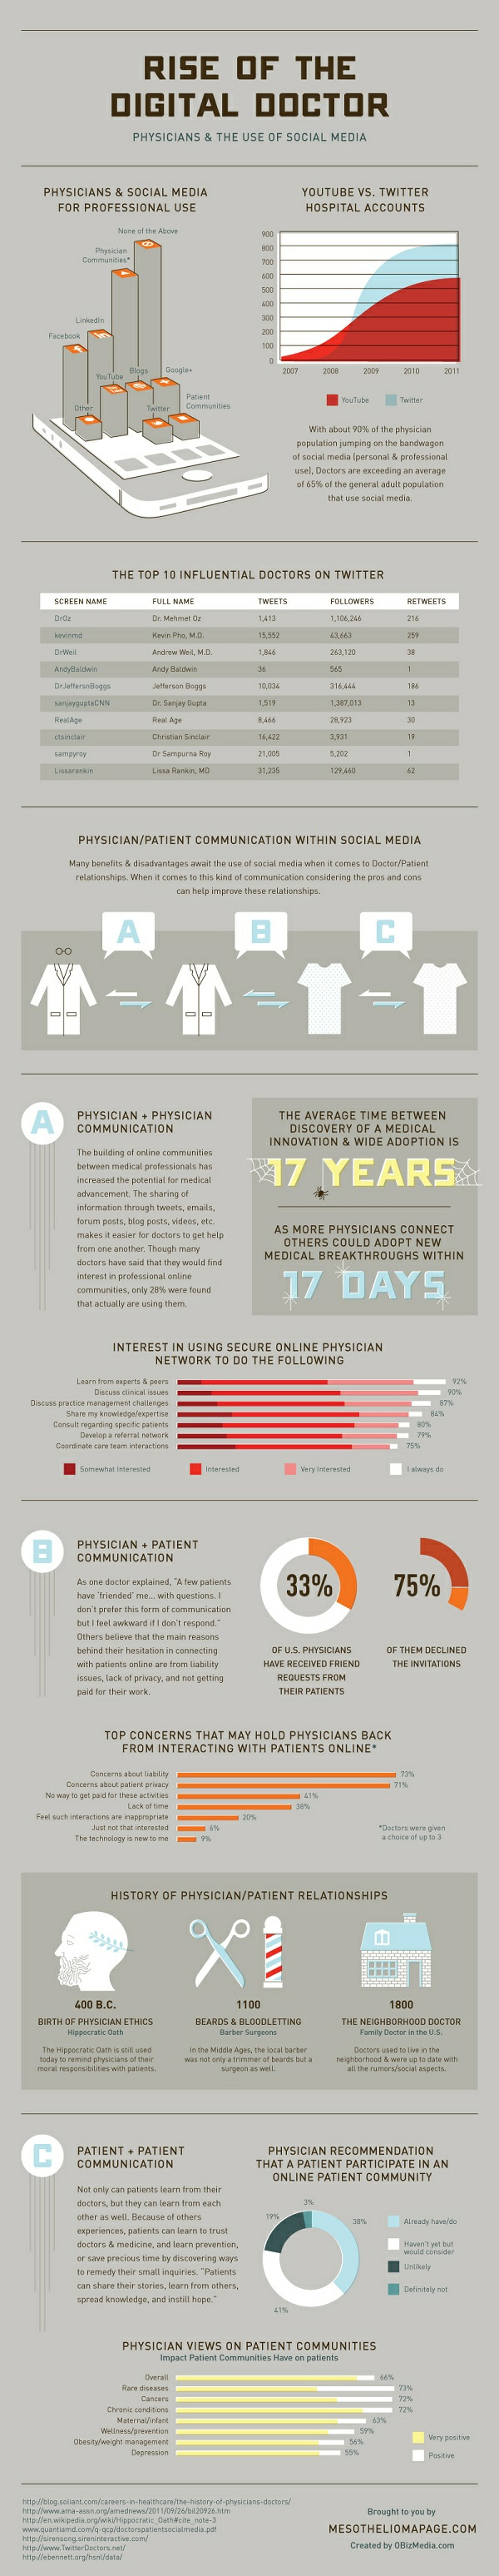 Doctors And Patients: The Social Media Dilemma [Infographic]